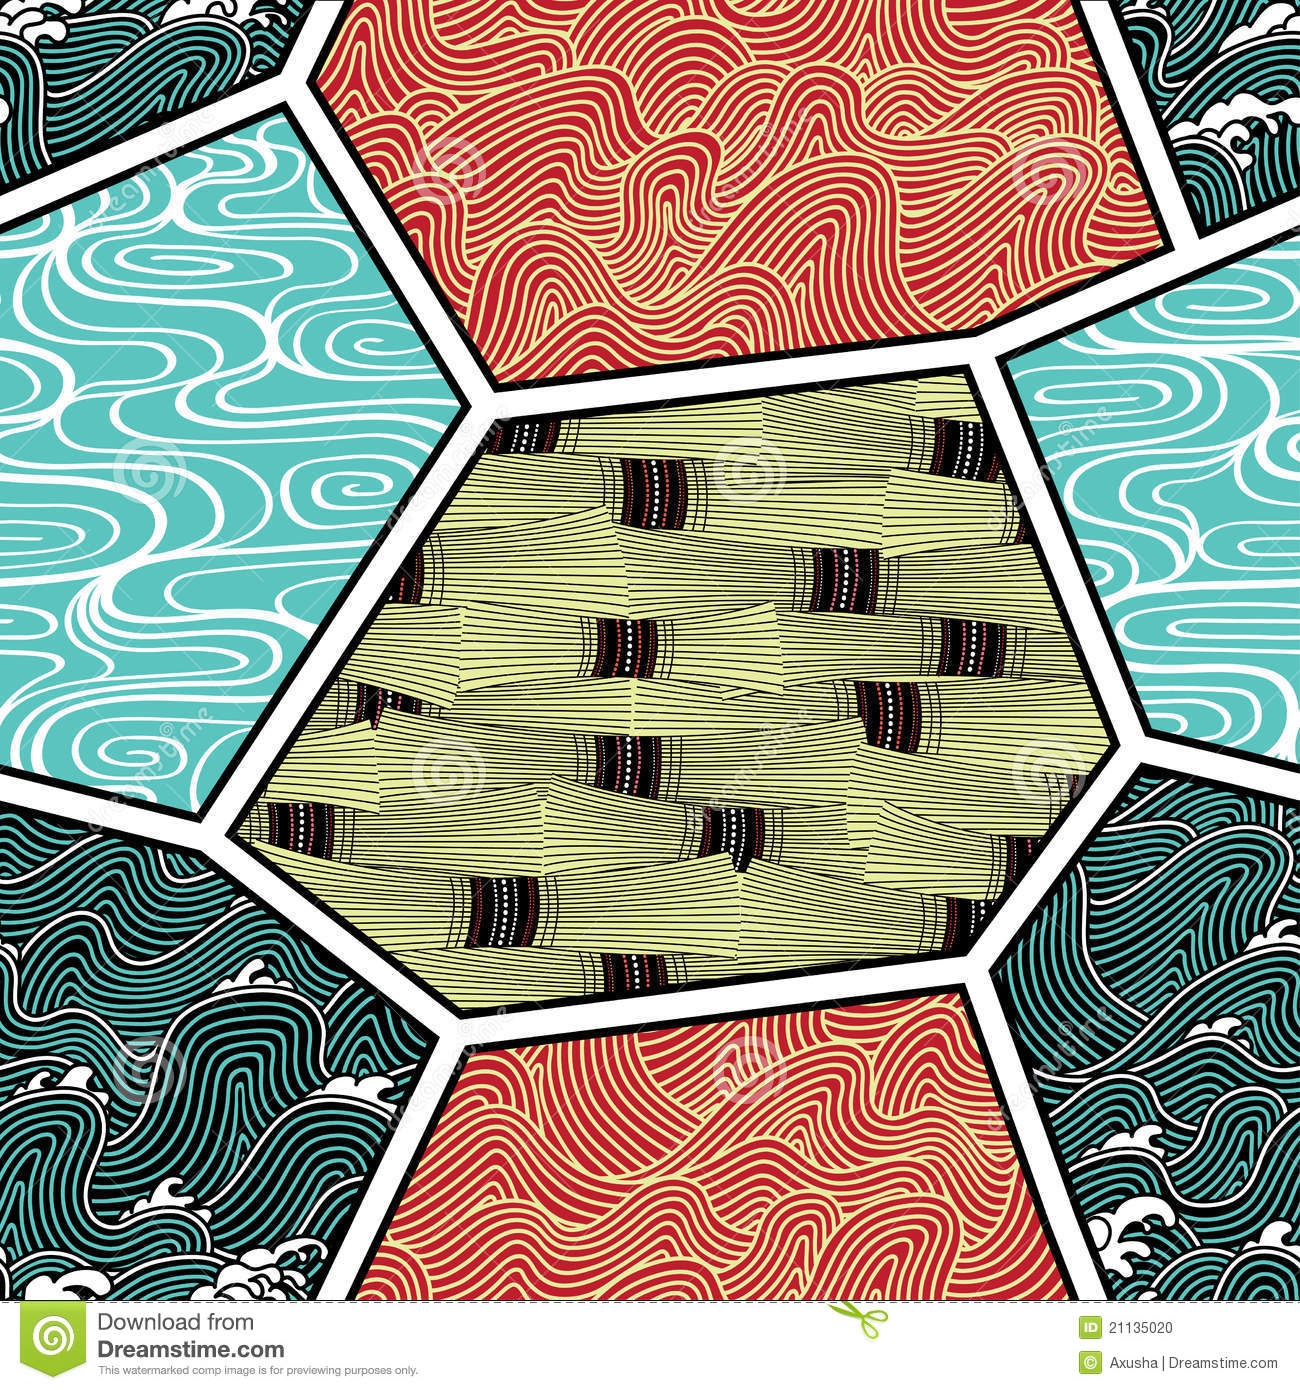 Japan Pattern With Nature Elements Stock Photo - Image: 21135020